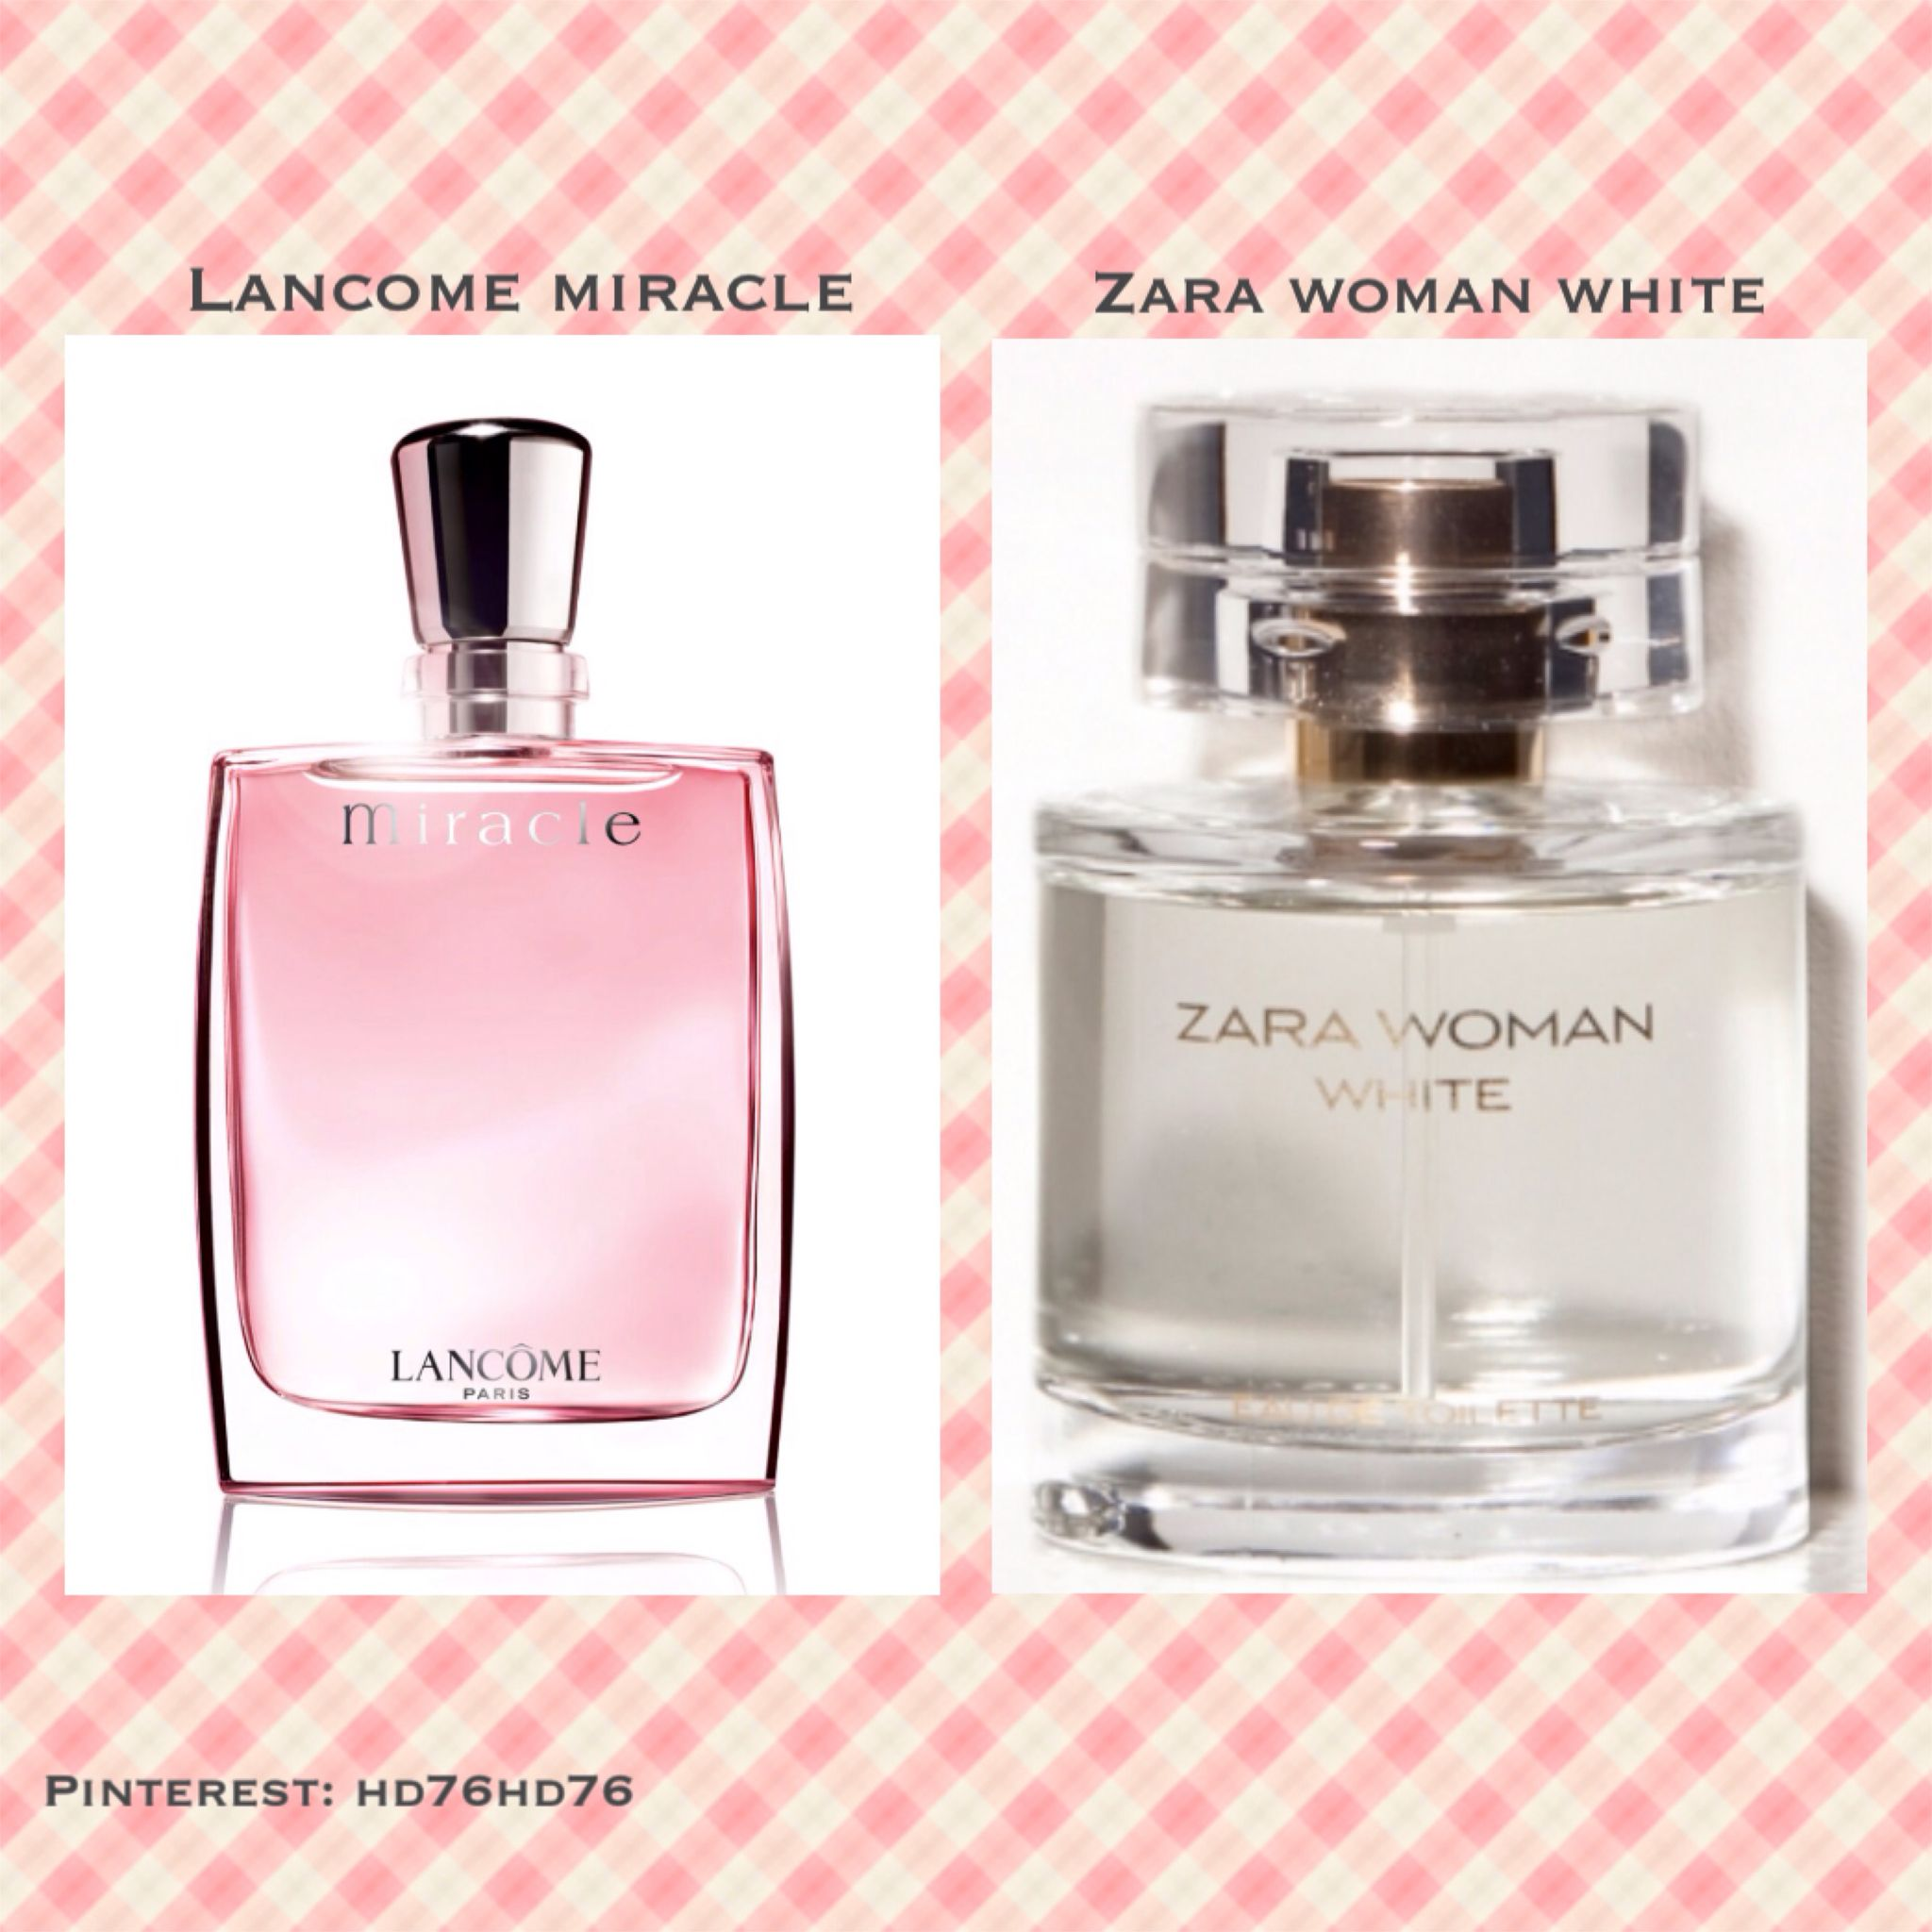 Lancome Miracle Perfume Smells Like Zara Woman White Perfume